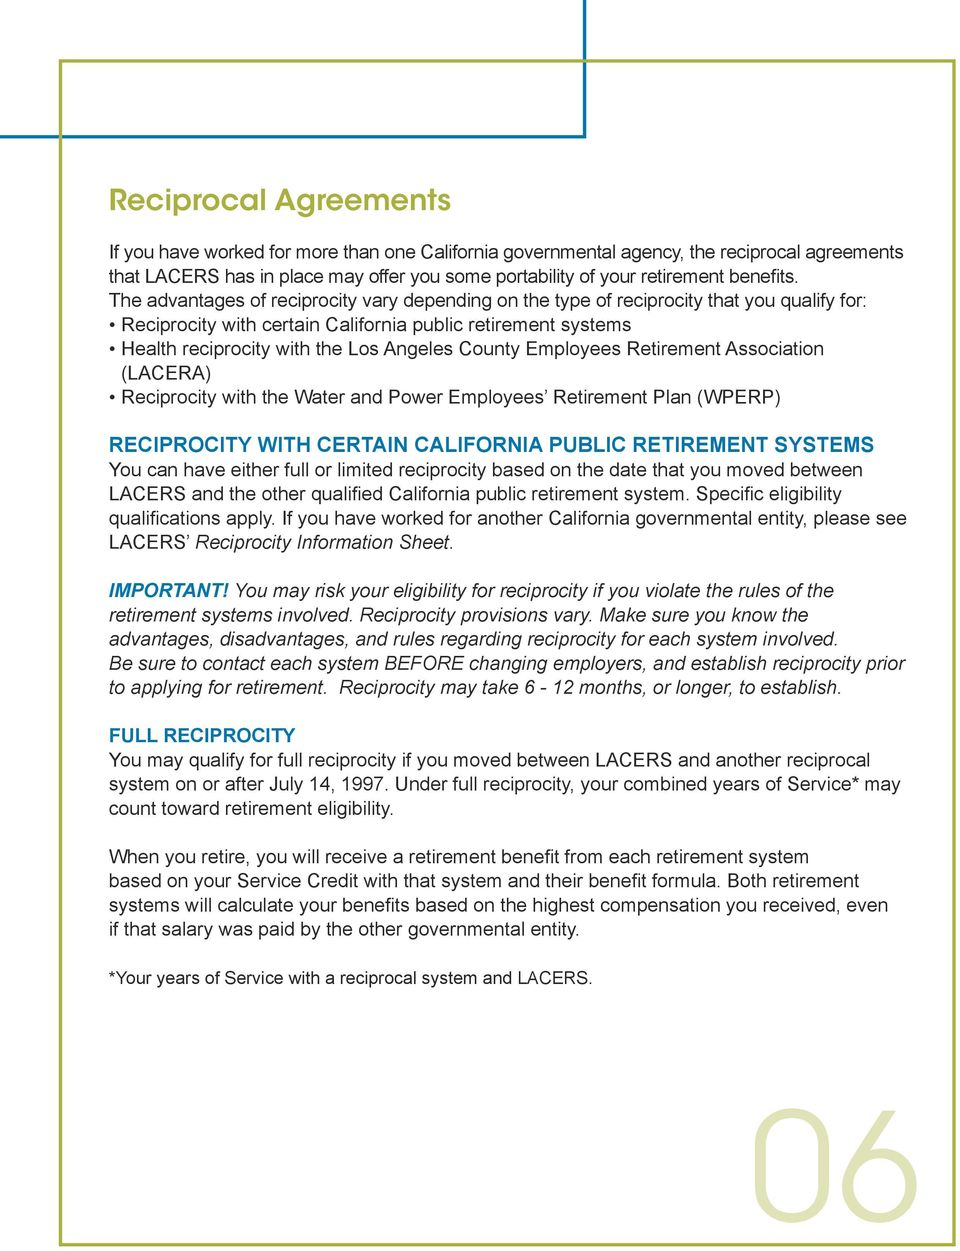 The advantages of reciprocity vary depending on the type of reciprocity that you qualify for: Reciprocity with certain California public retirement systems Health reciprocity with the Los Angeles